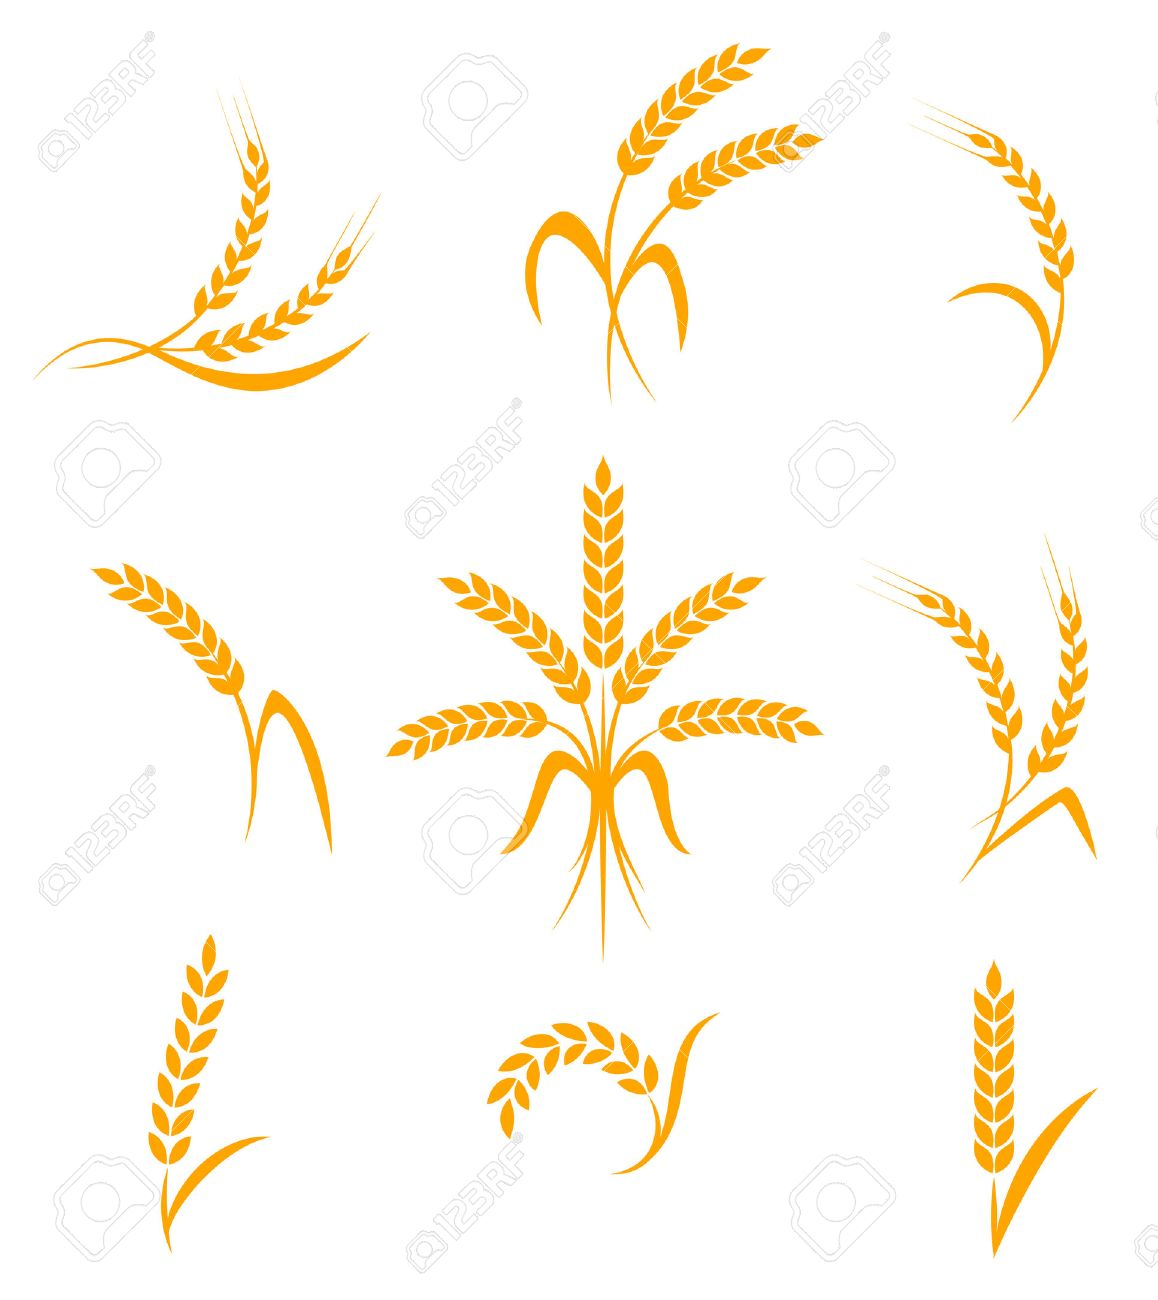 Wheat ears or rice icons set. Agricultural symbols isolated on white background. Design elements for bread packaging or beer label. Vector illustration. - 51336310